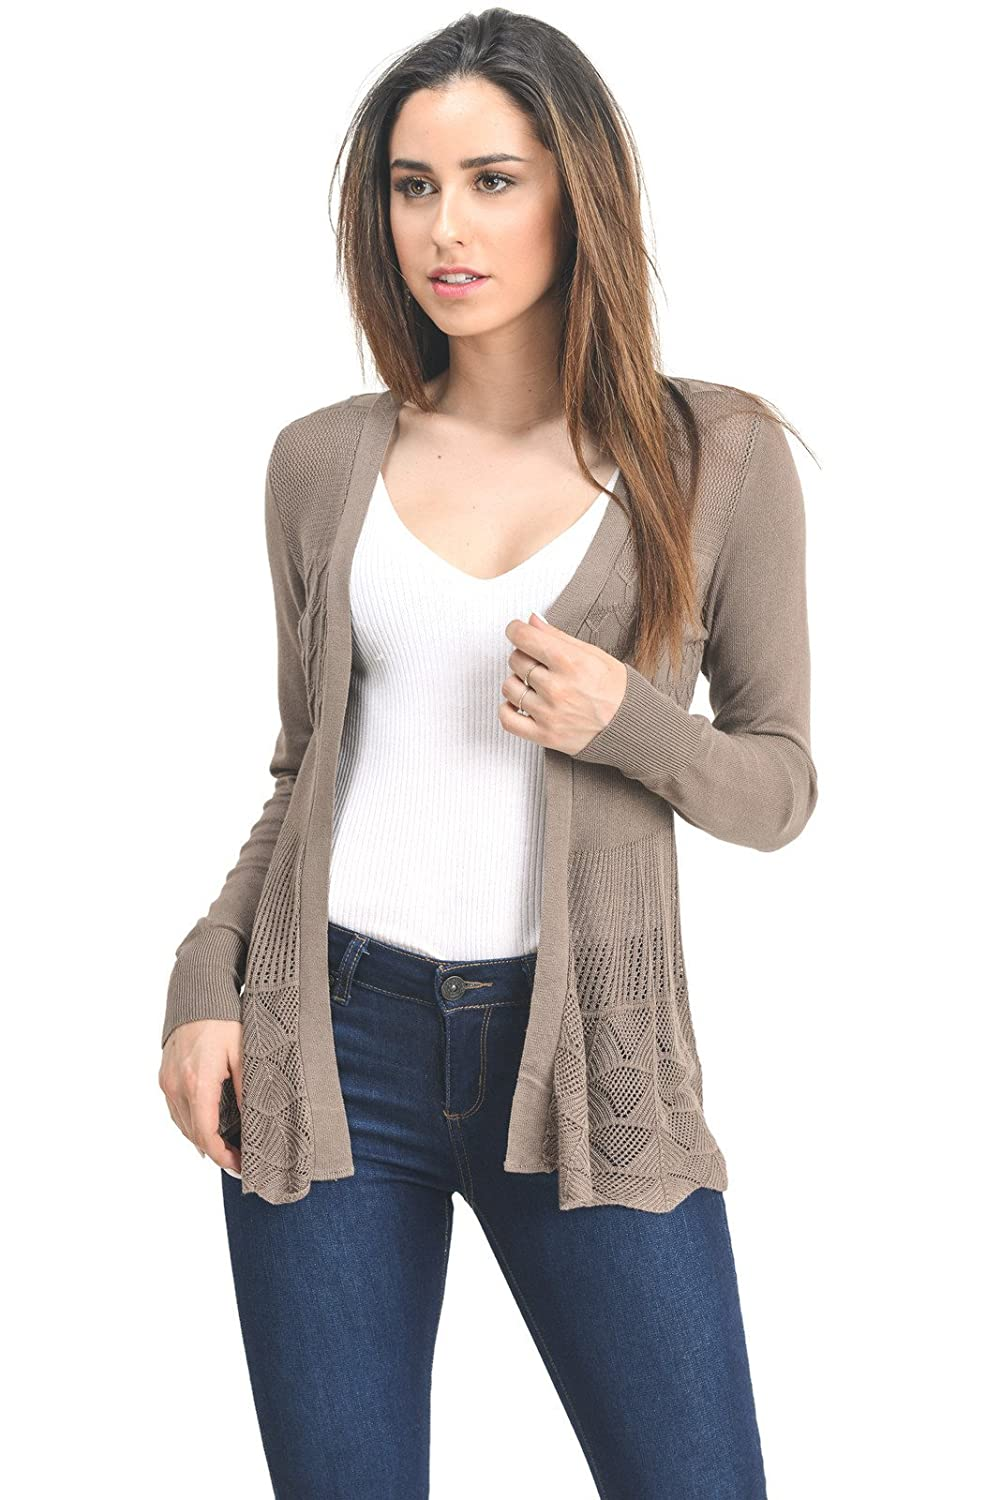 C09115 Mocha Instar Mode InstarMode Women's Long Sleeve Crochet Knit Sweater Draped Open Cardigan